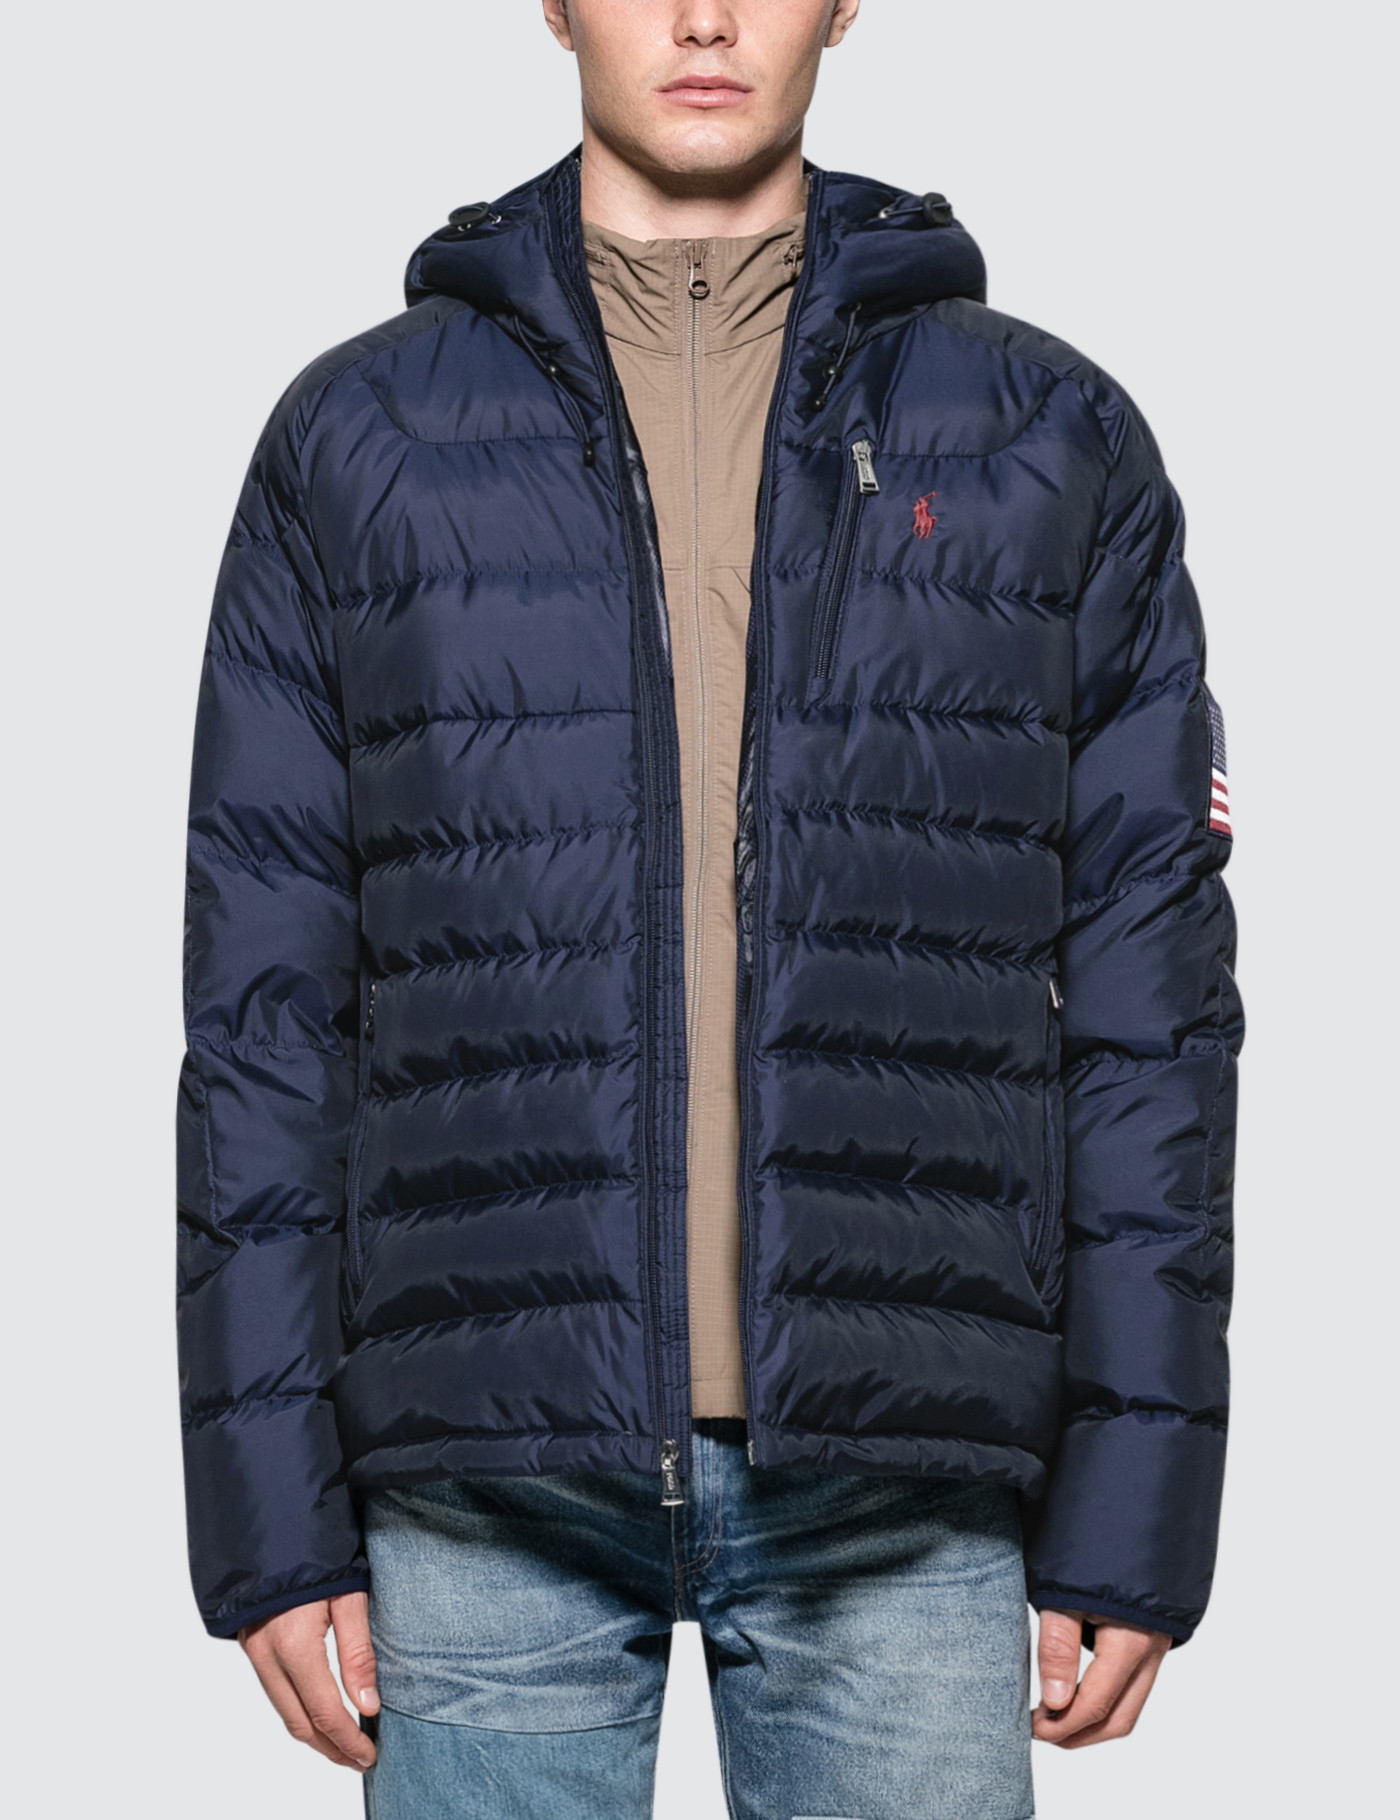 Buy Original Polo Ralph Lauren Glacier Heated Down Jacket at ... d8896fdab37